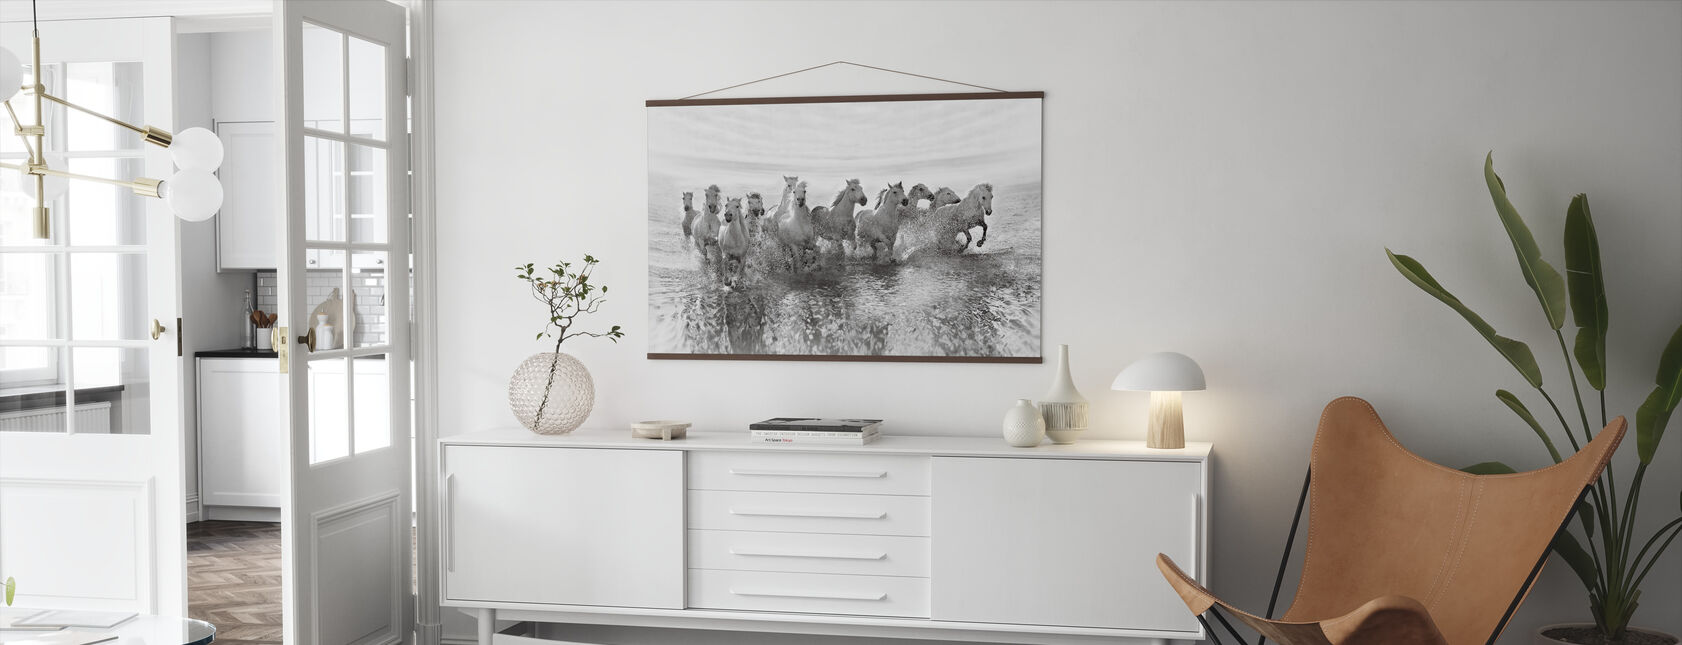 Illusion of Power (13 horse power though) - Poster - Living Room